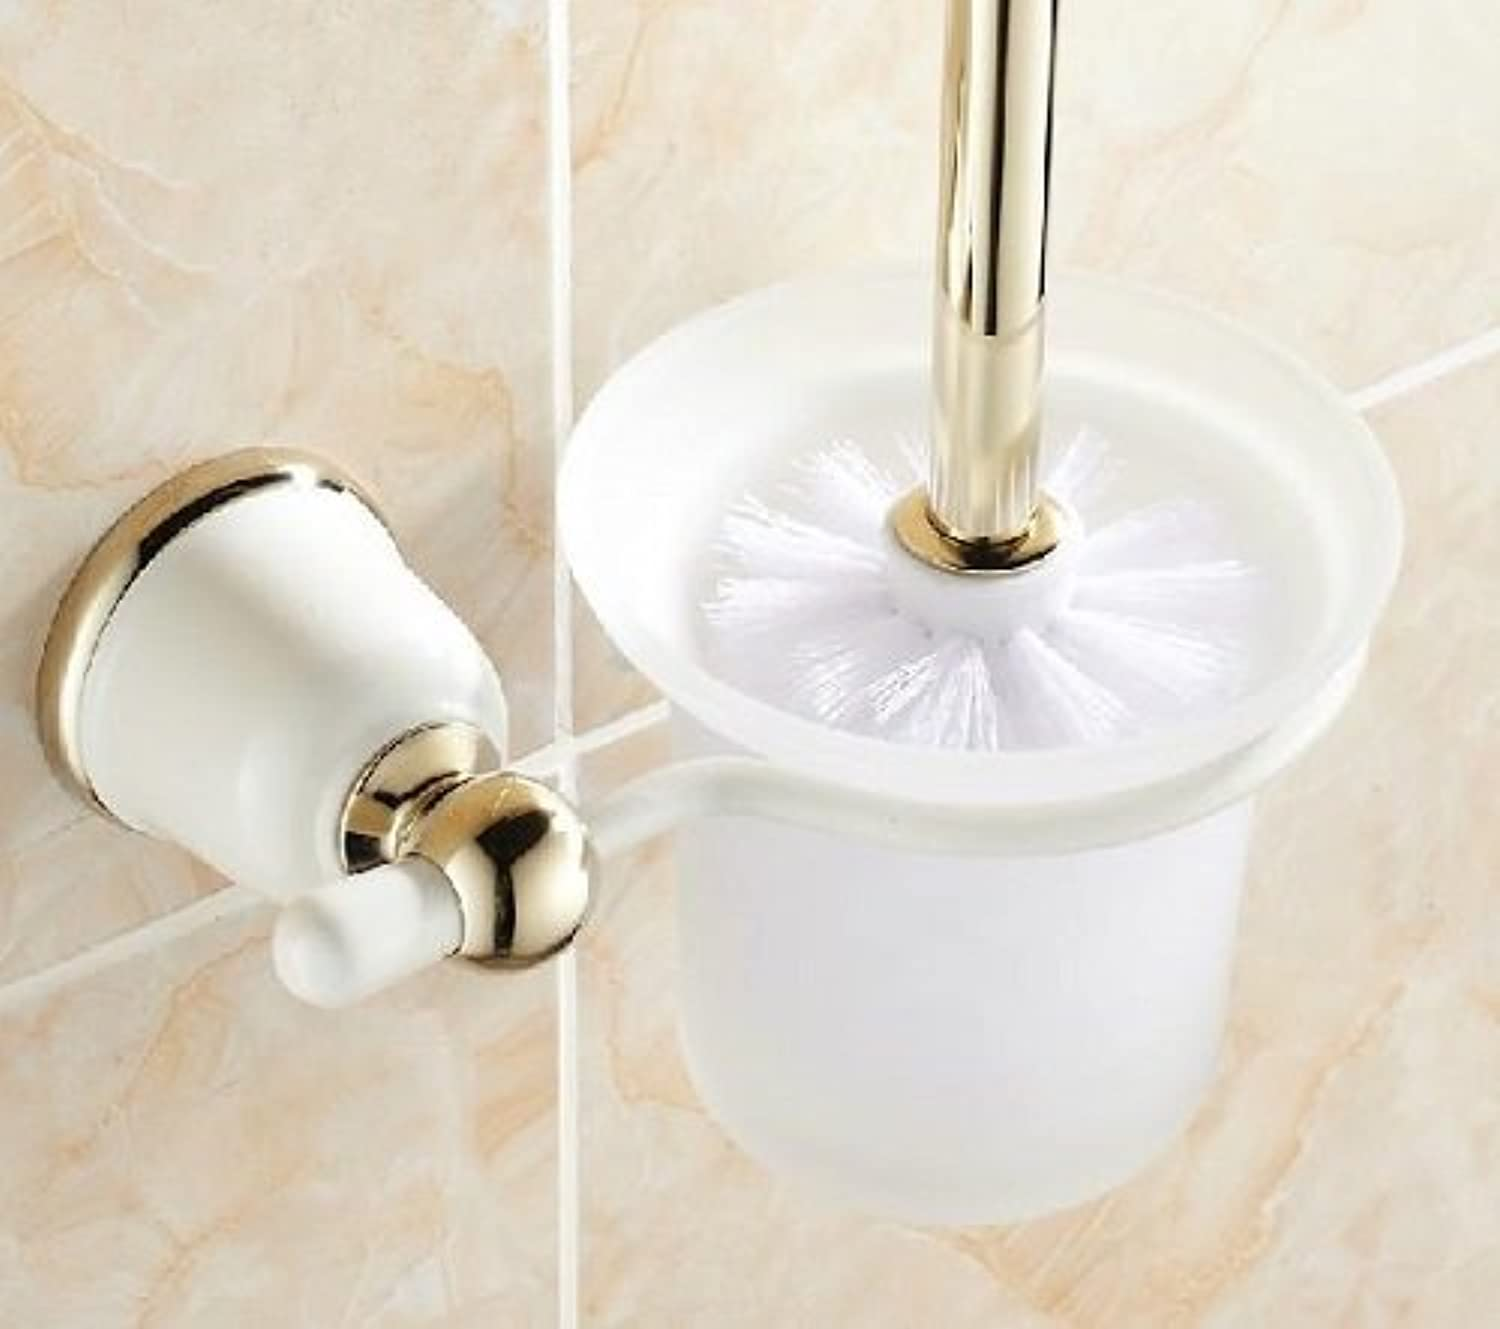 Bathroom Toilet Brush with Frosted Glass Cup and Brass Holder in White+gold Finish  MKL02A